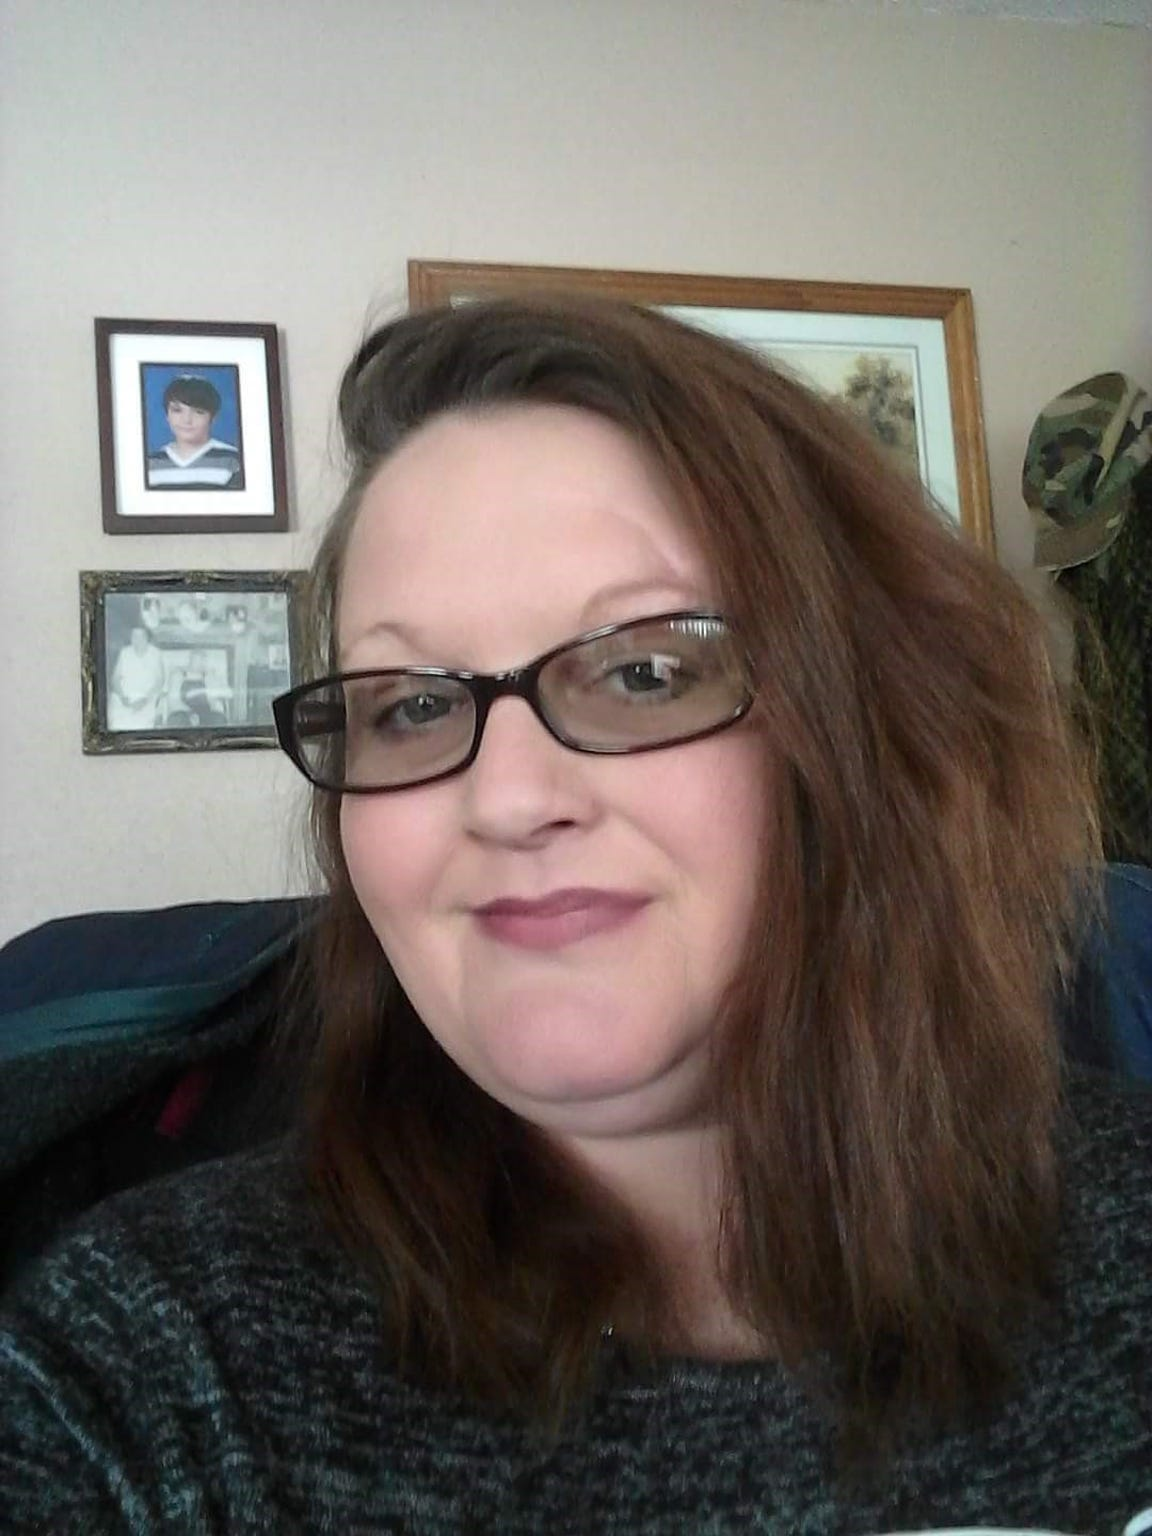 """Jeanne Decanter said, in the last 18 months since she's gotten off opioids, she still deals with chronic pain resulting from injuries sustained during a car wreck in 2002. """"But it is nothing compared to the way that I hurt when I was on them,"""" she said."""